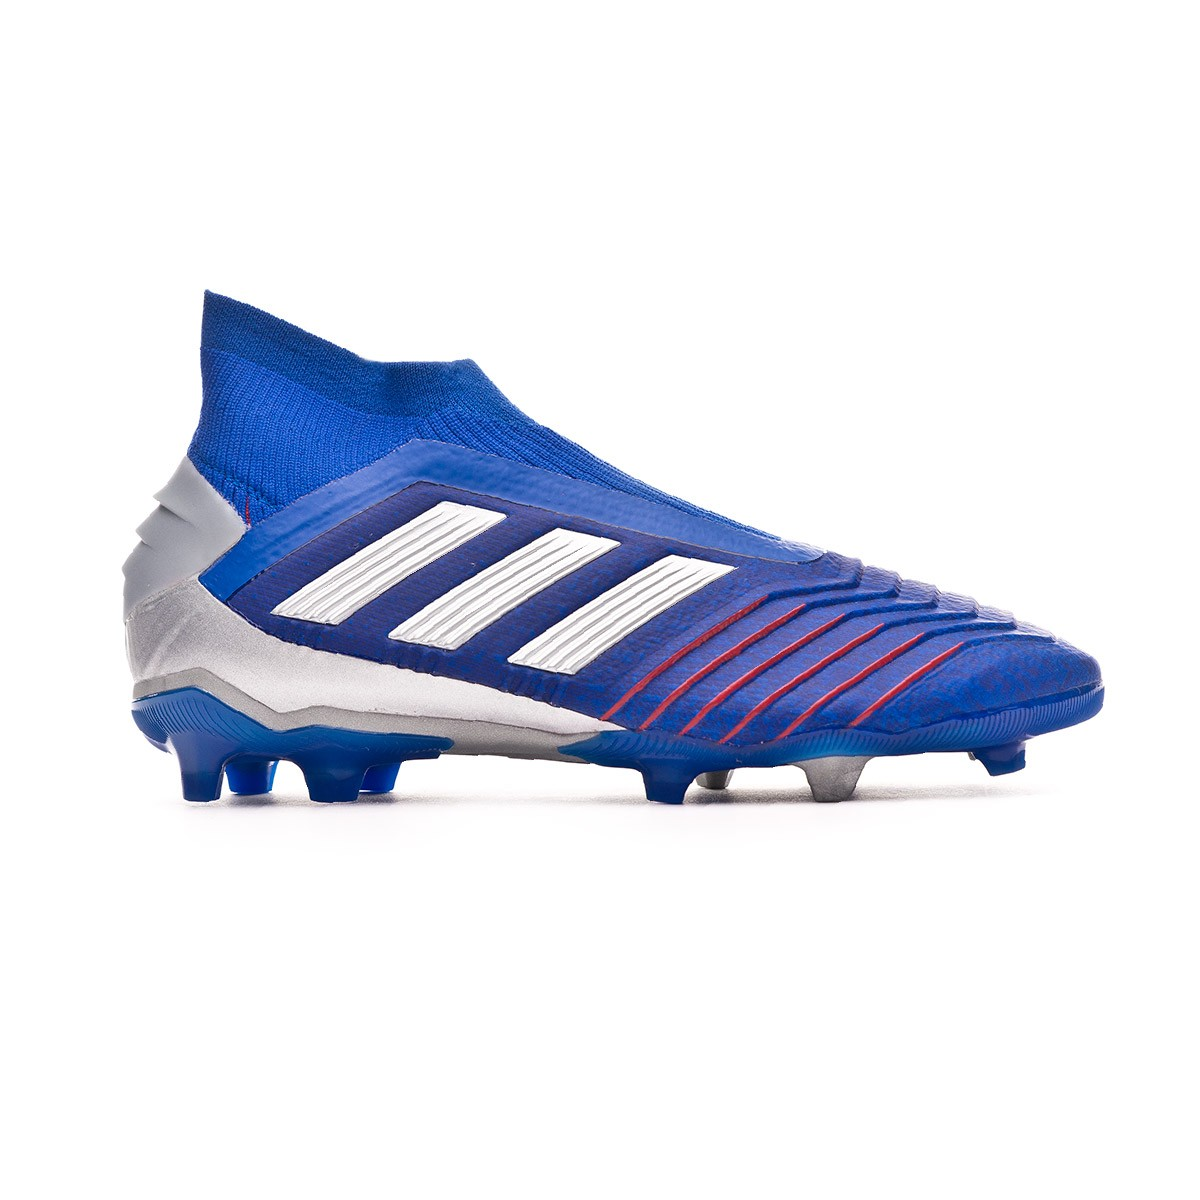 7a8b2c7d6d ... finest selection 756f5 6a491 Boot adidas Kids Predator 19+ FG Bold  blue-Silver metallic